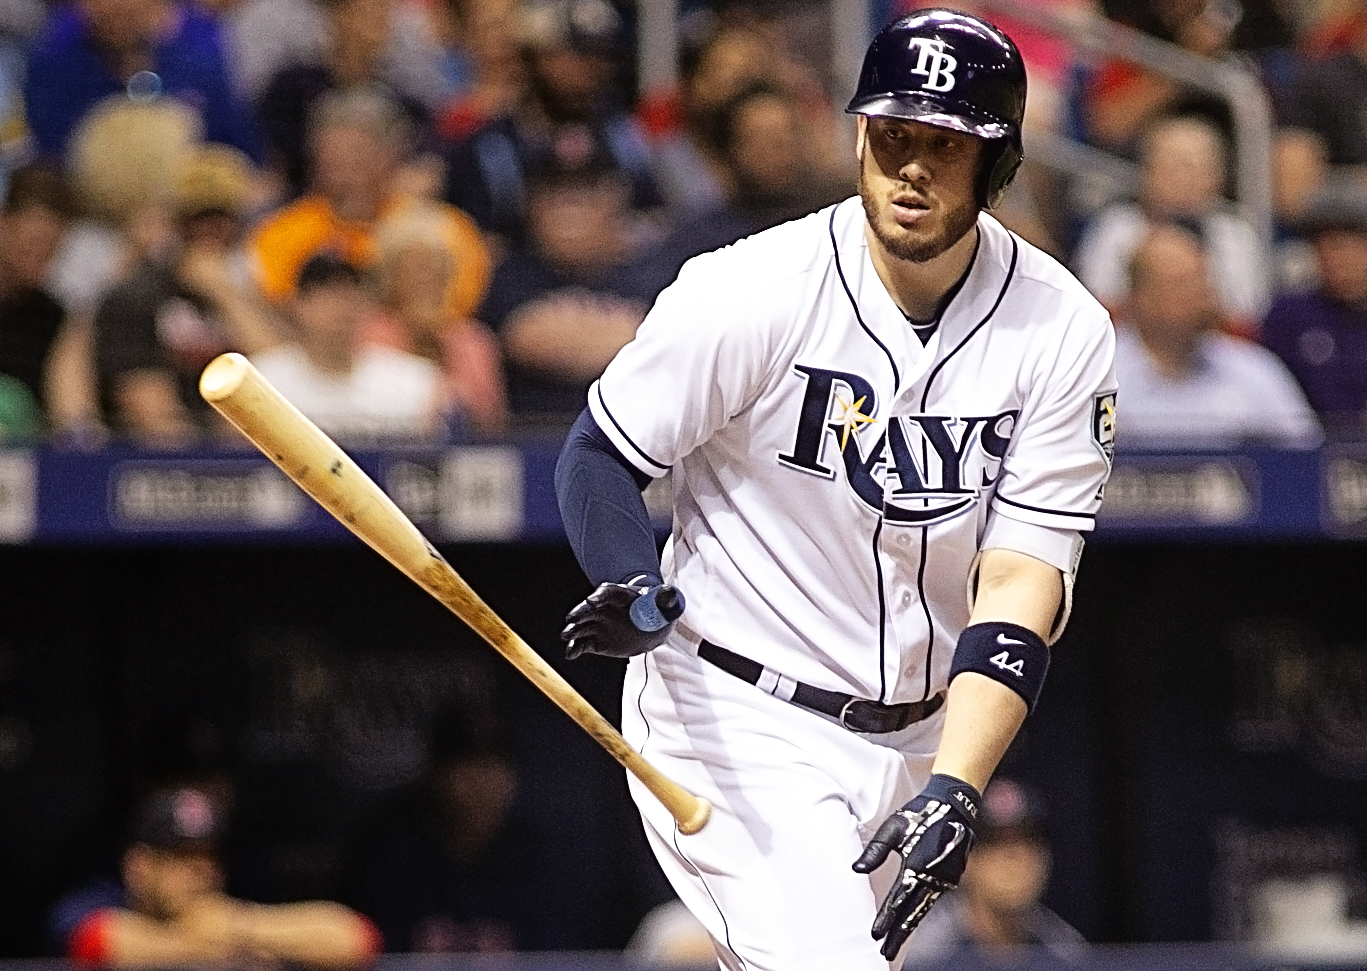 Cron hit his 16th homer of the season./CARMEN MANDATO